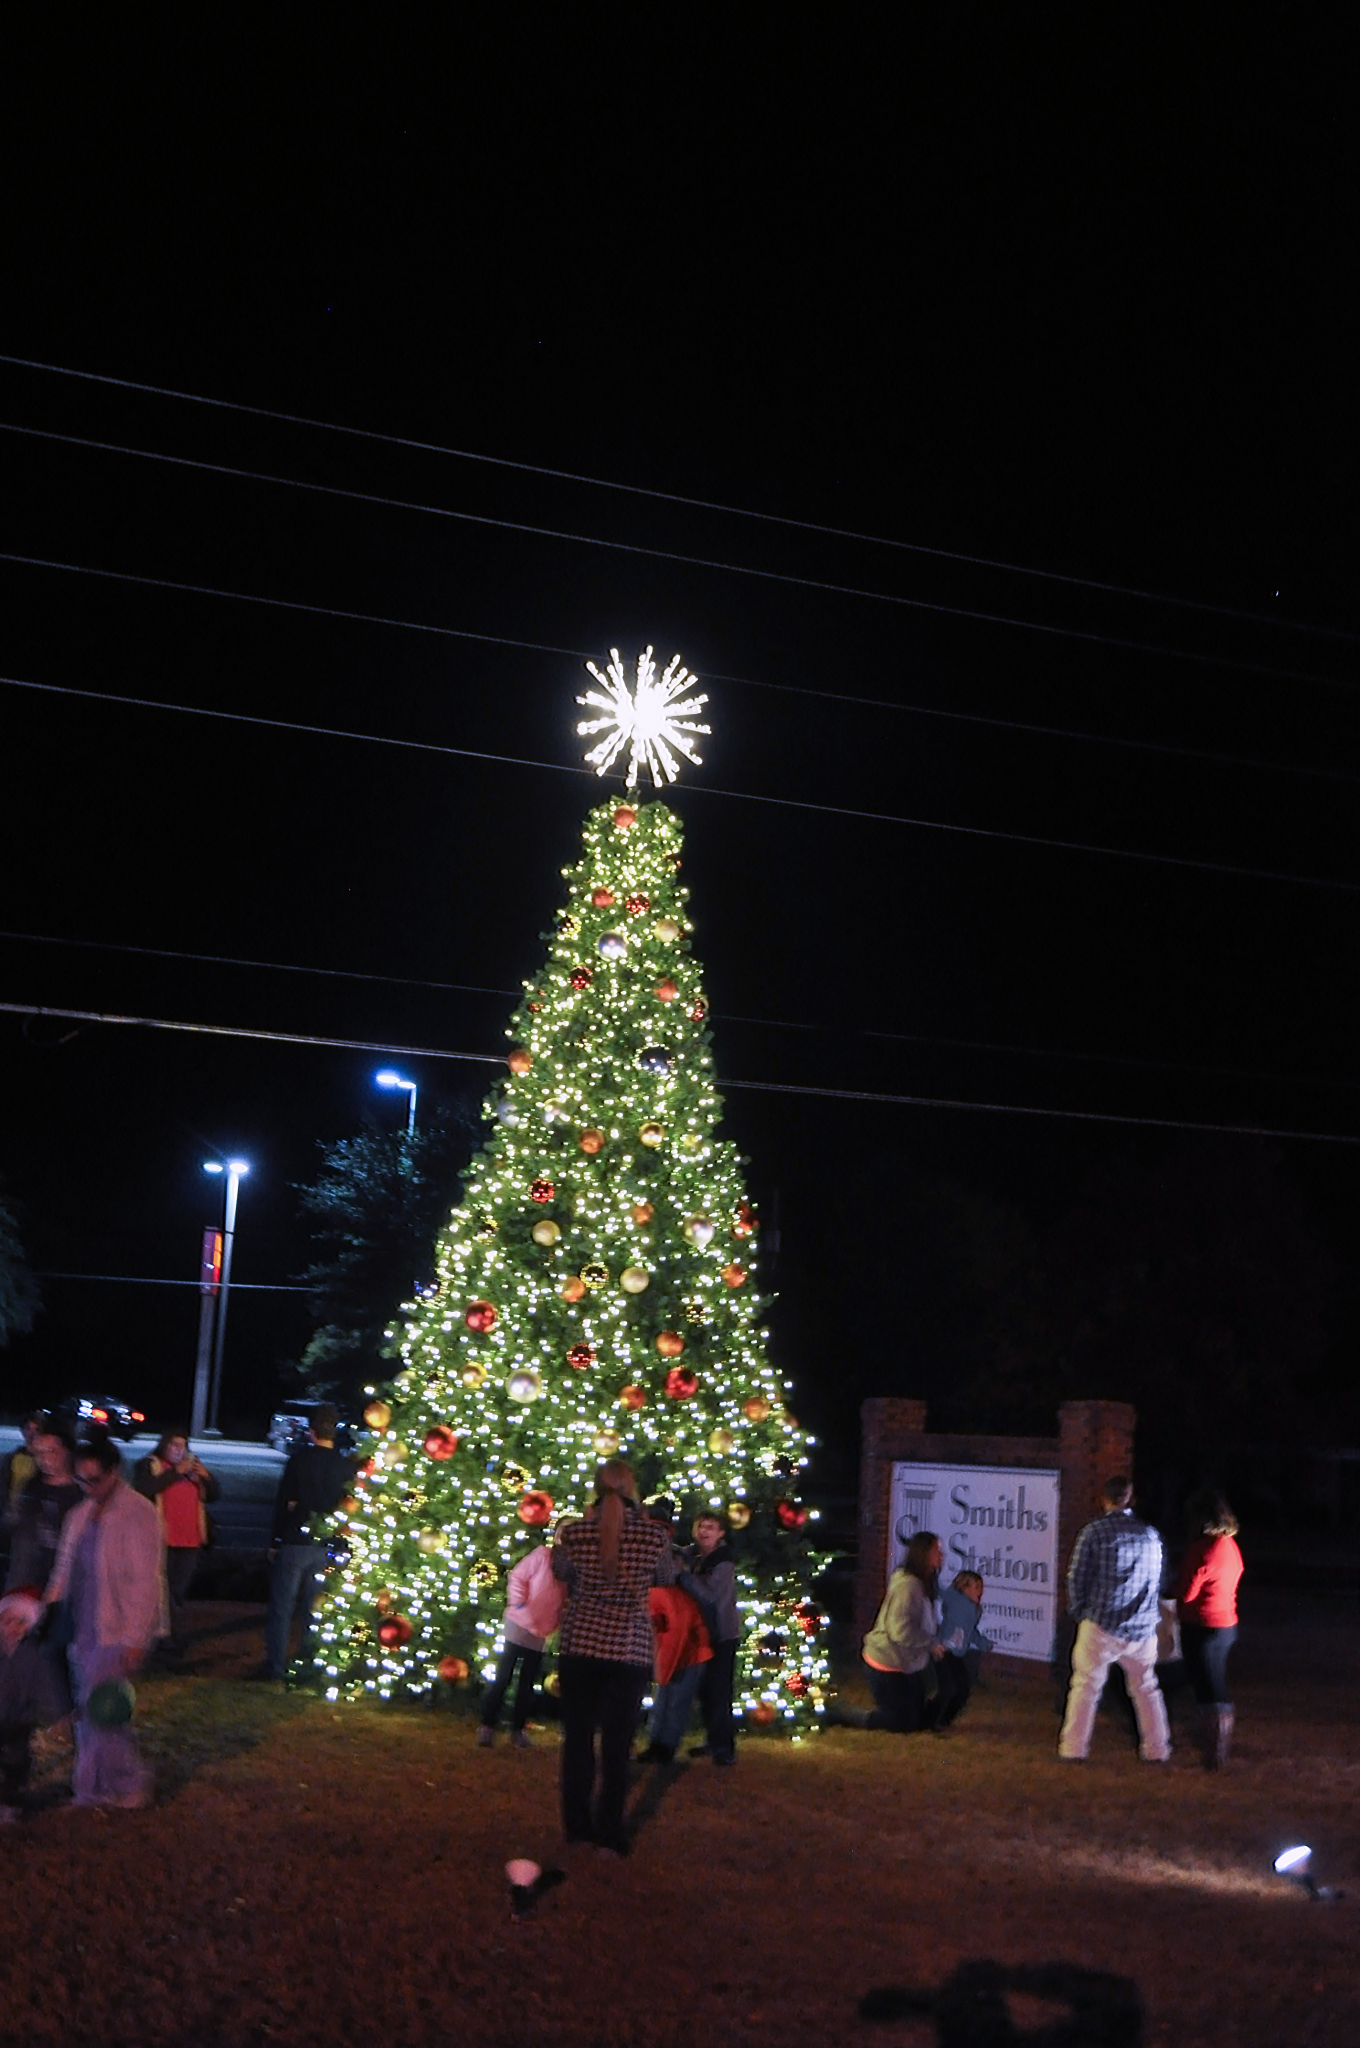 Smiths Station Christmas Tree Lighting - December 4th - City Of ...